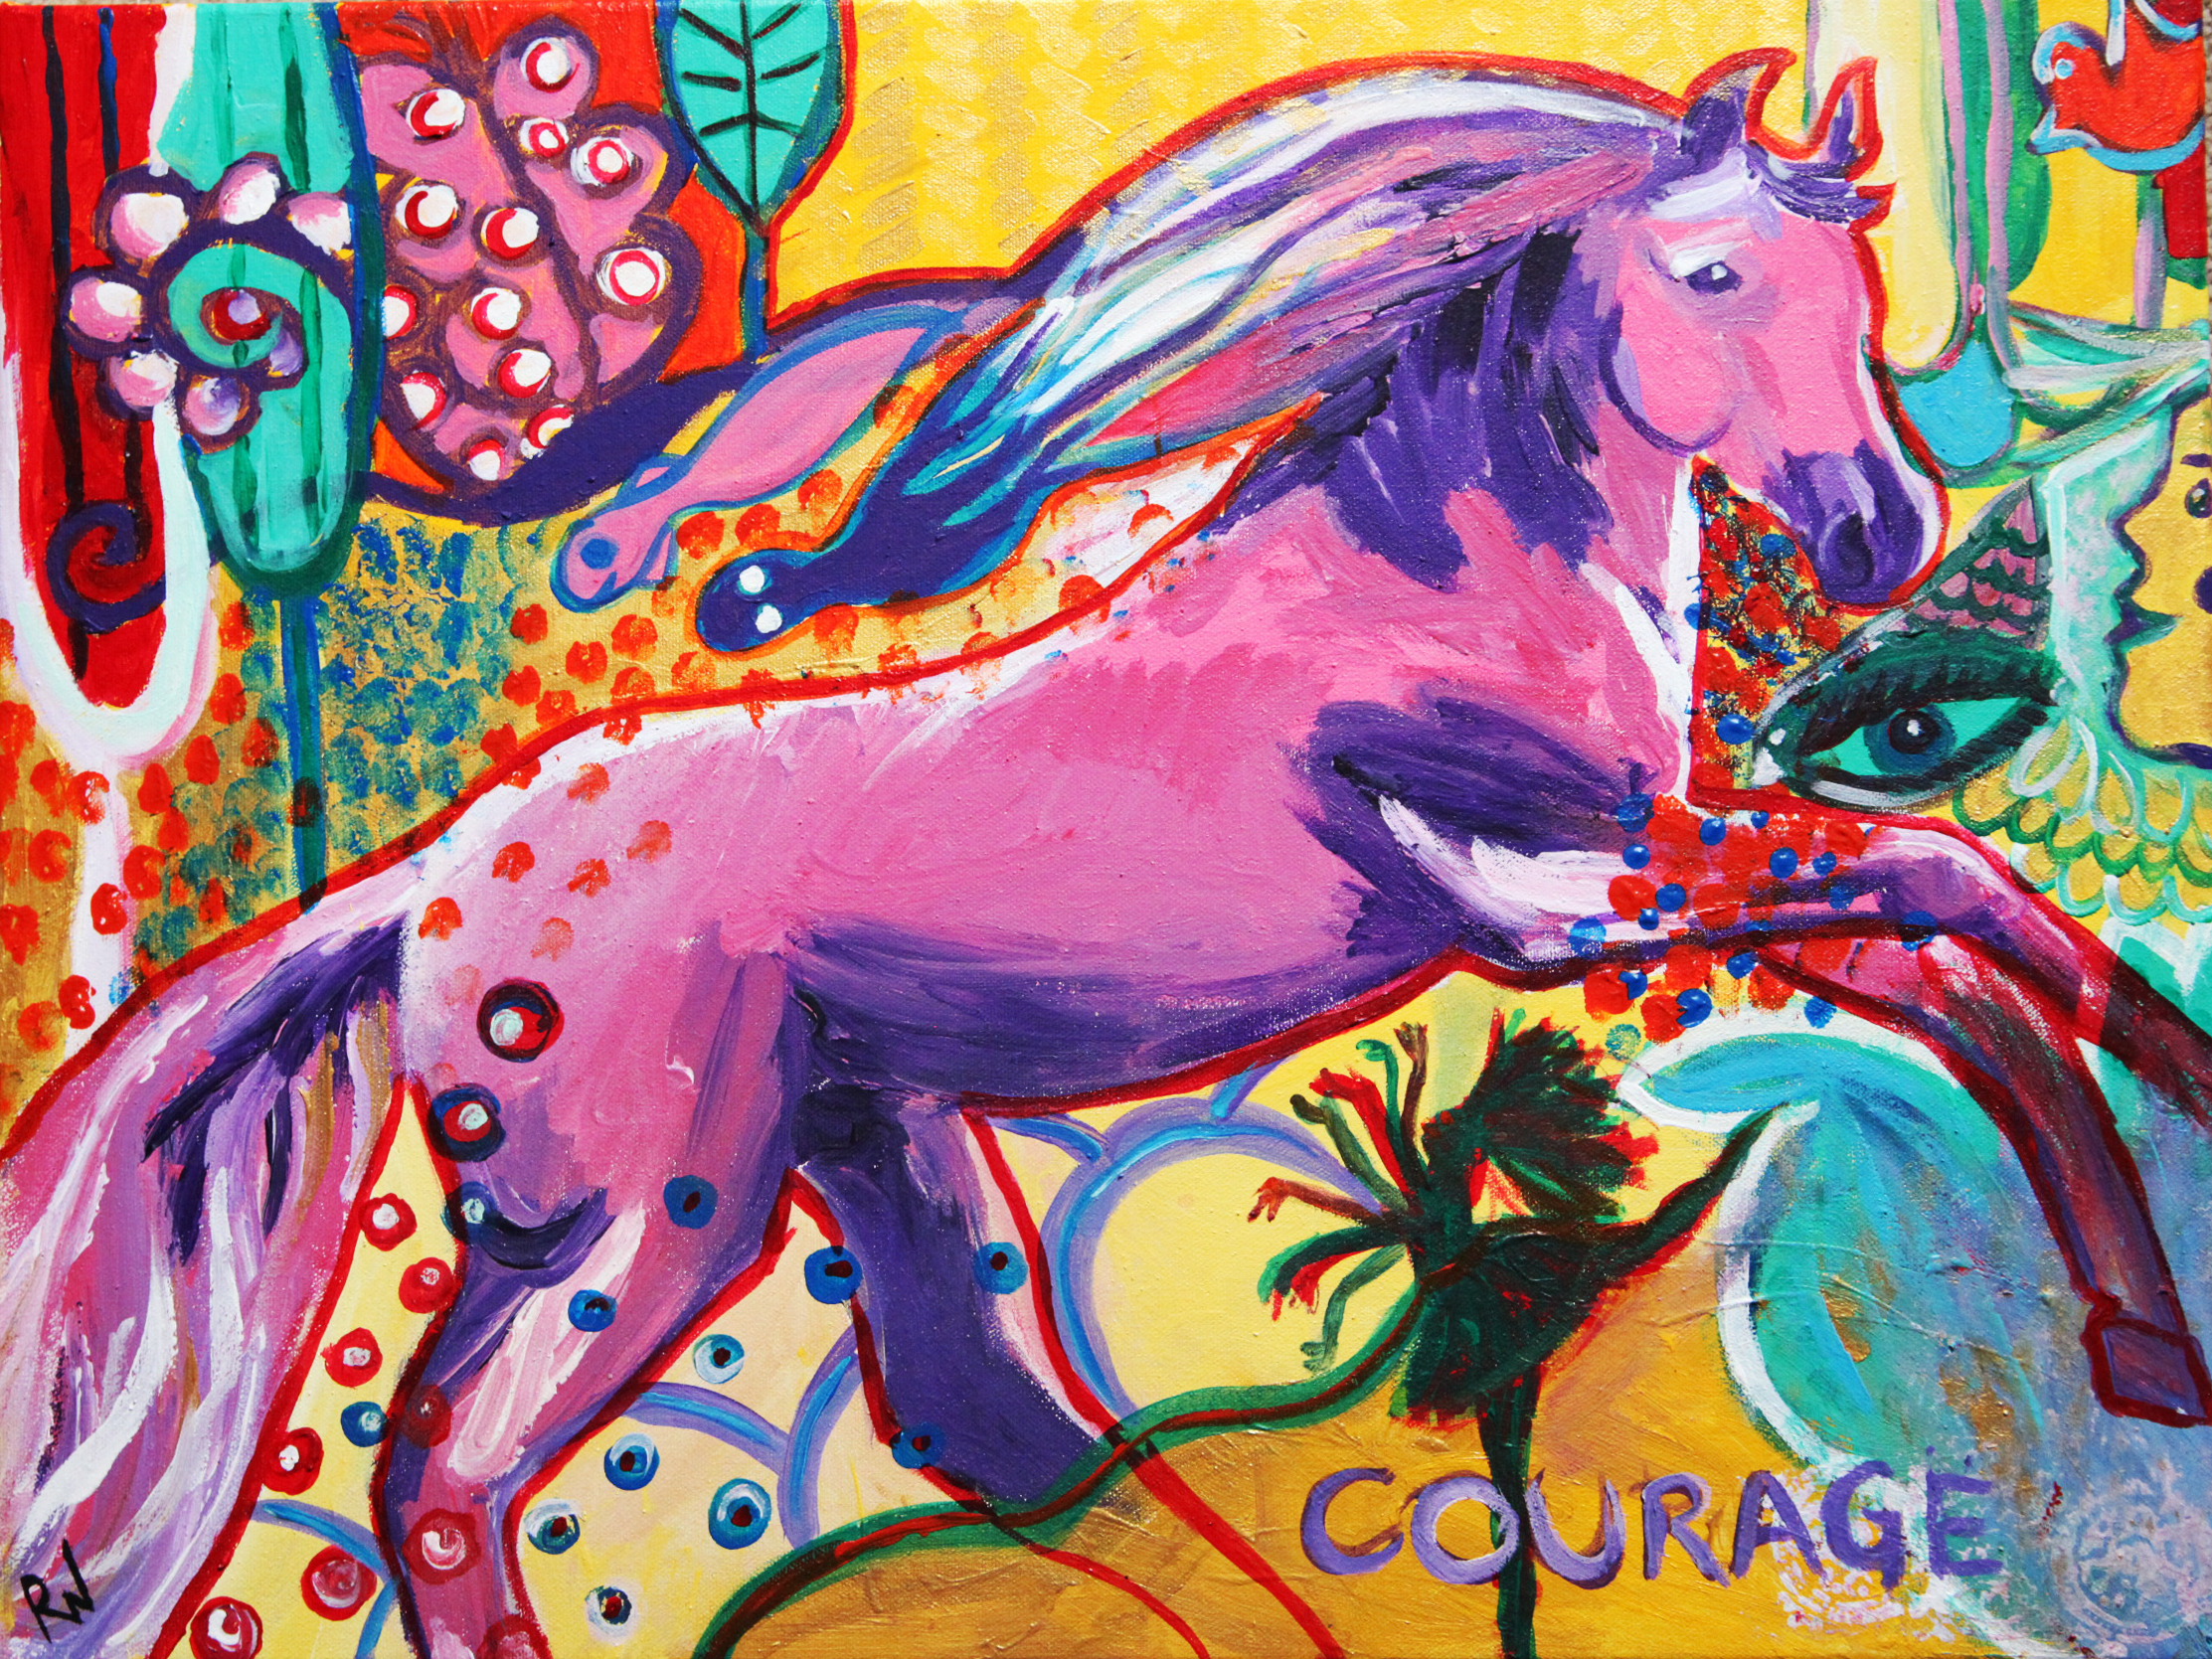 Courage201718x20